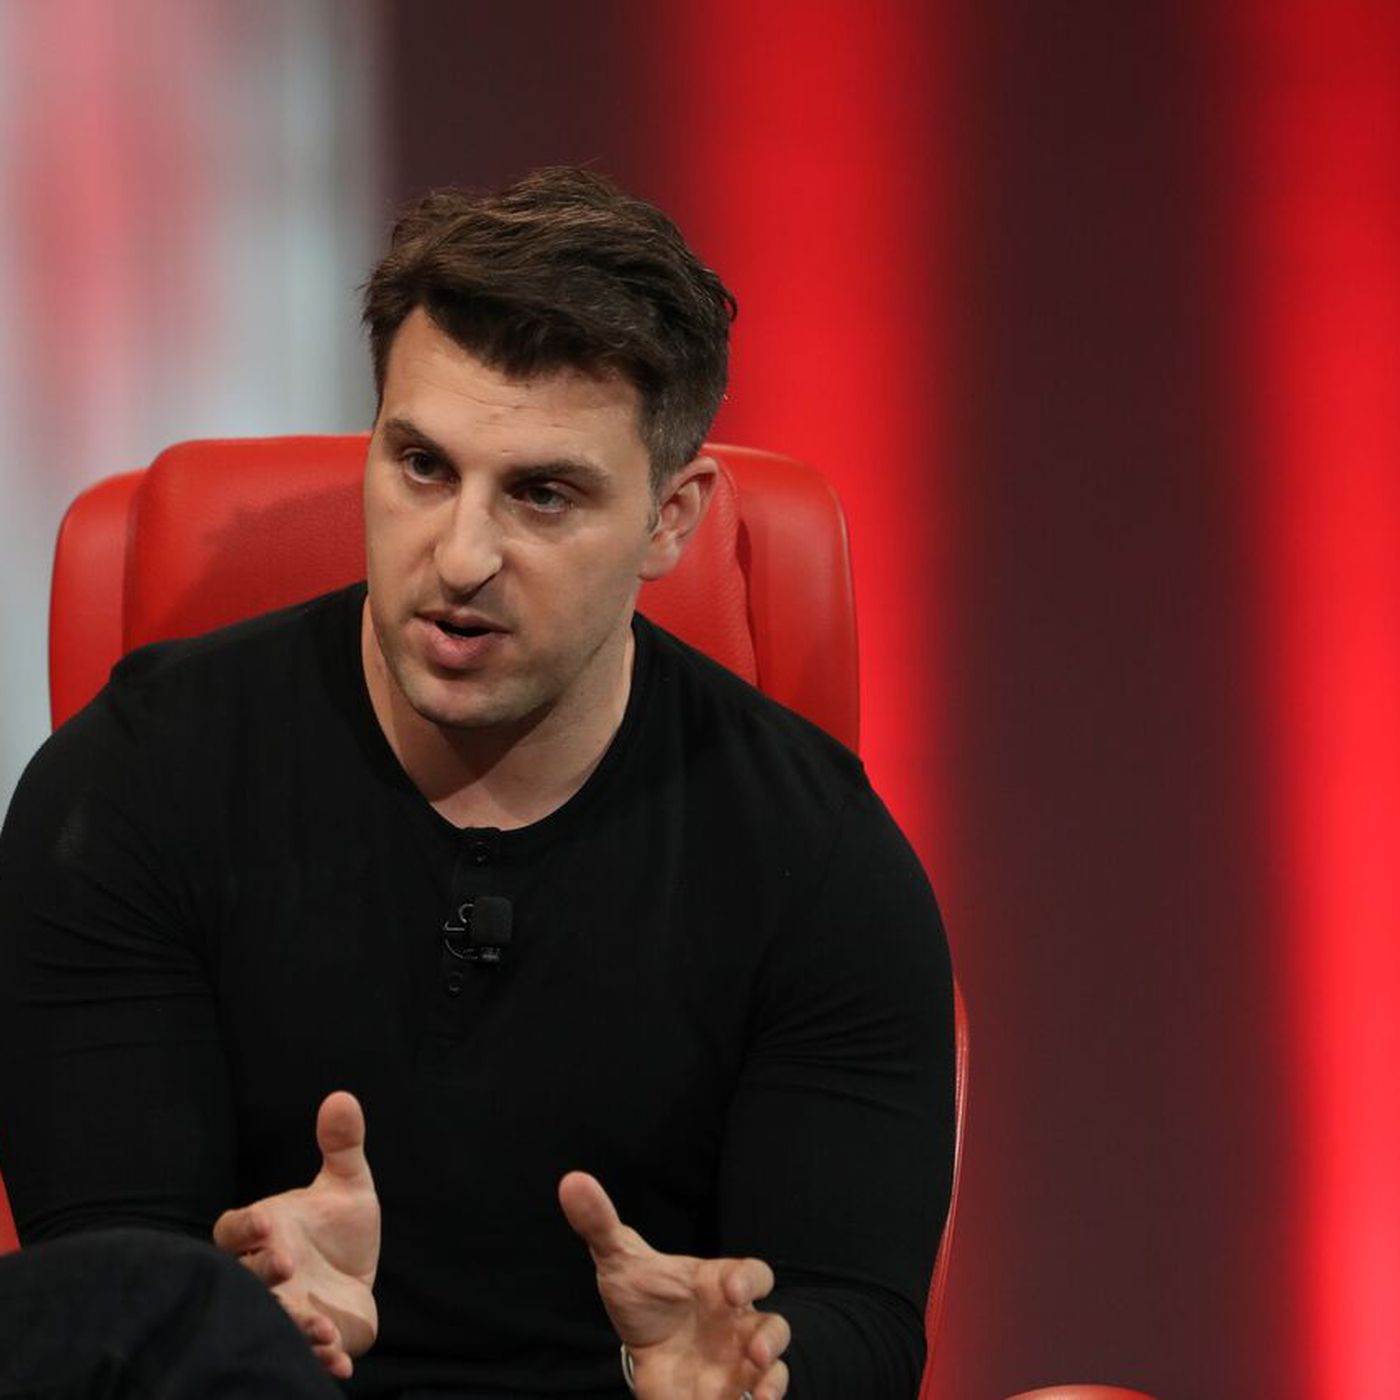 Full video and transcript: Airbnb CEO Brian Chesky at Code